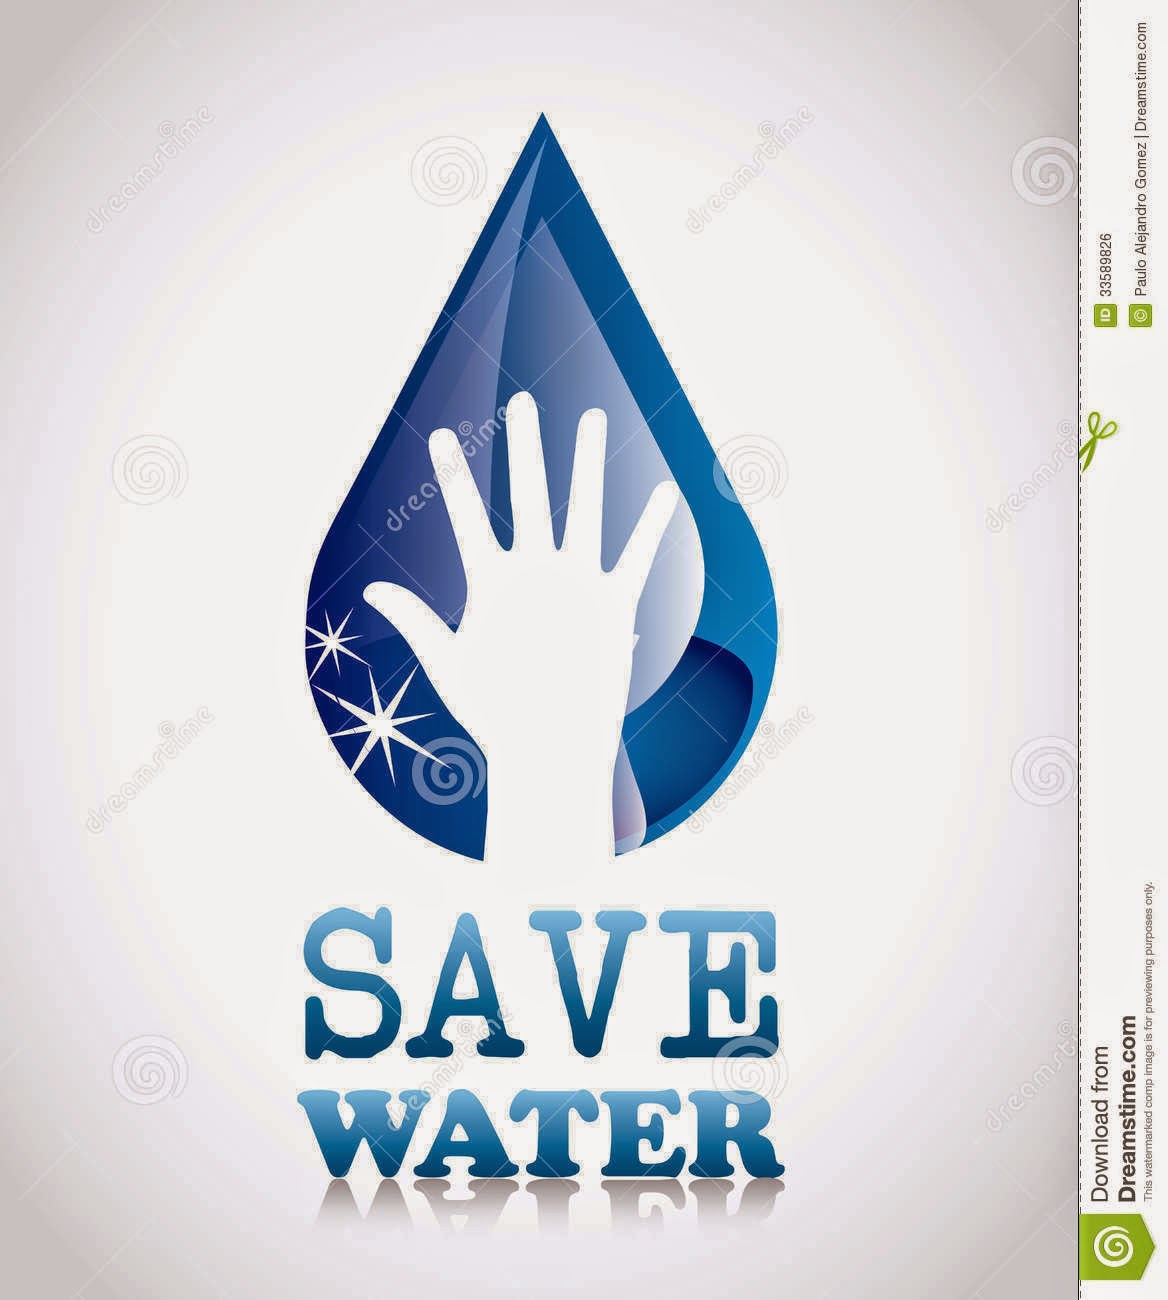 saving of water essay The importance of water on life essayswater has many roles in living organisms and life on earth is impossible without it it makes up between 60% and 95% of the fresh mass of the organisms.